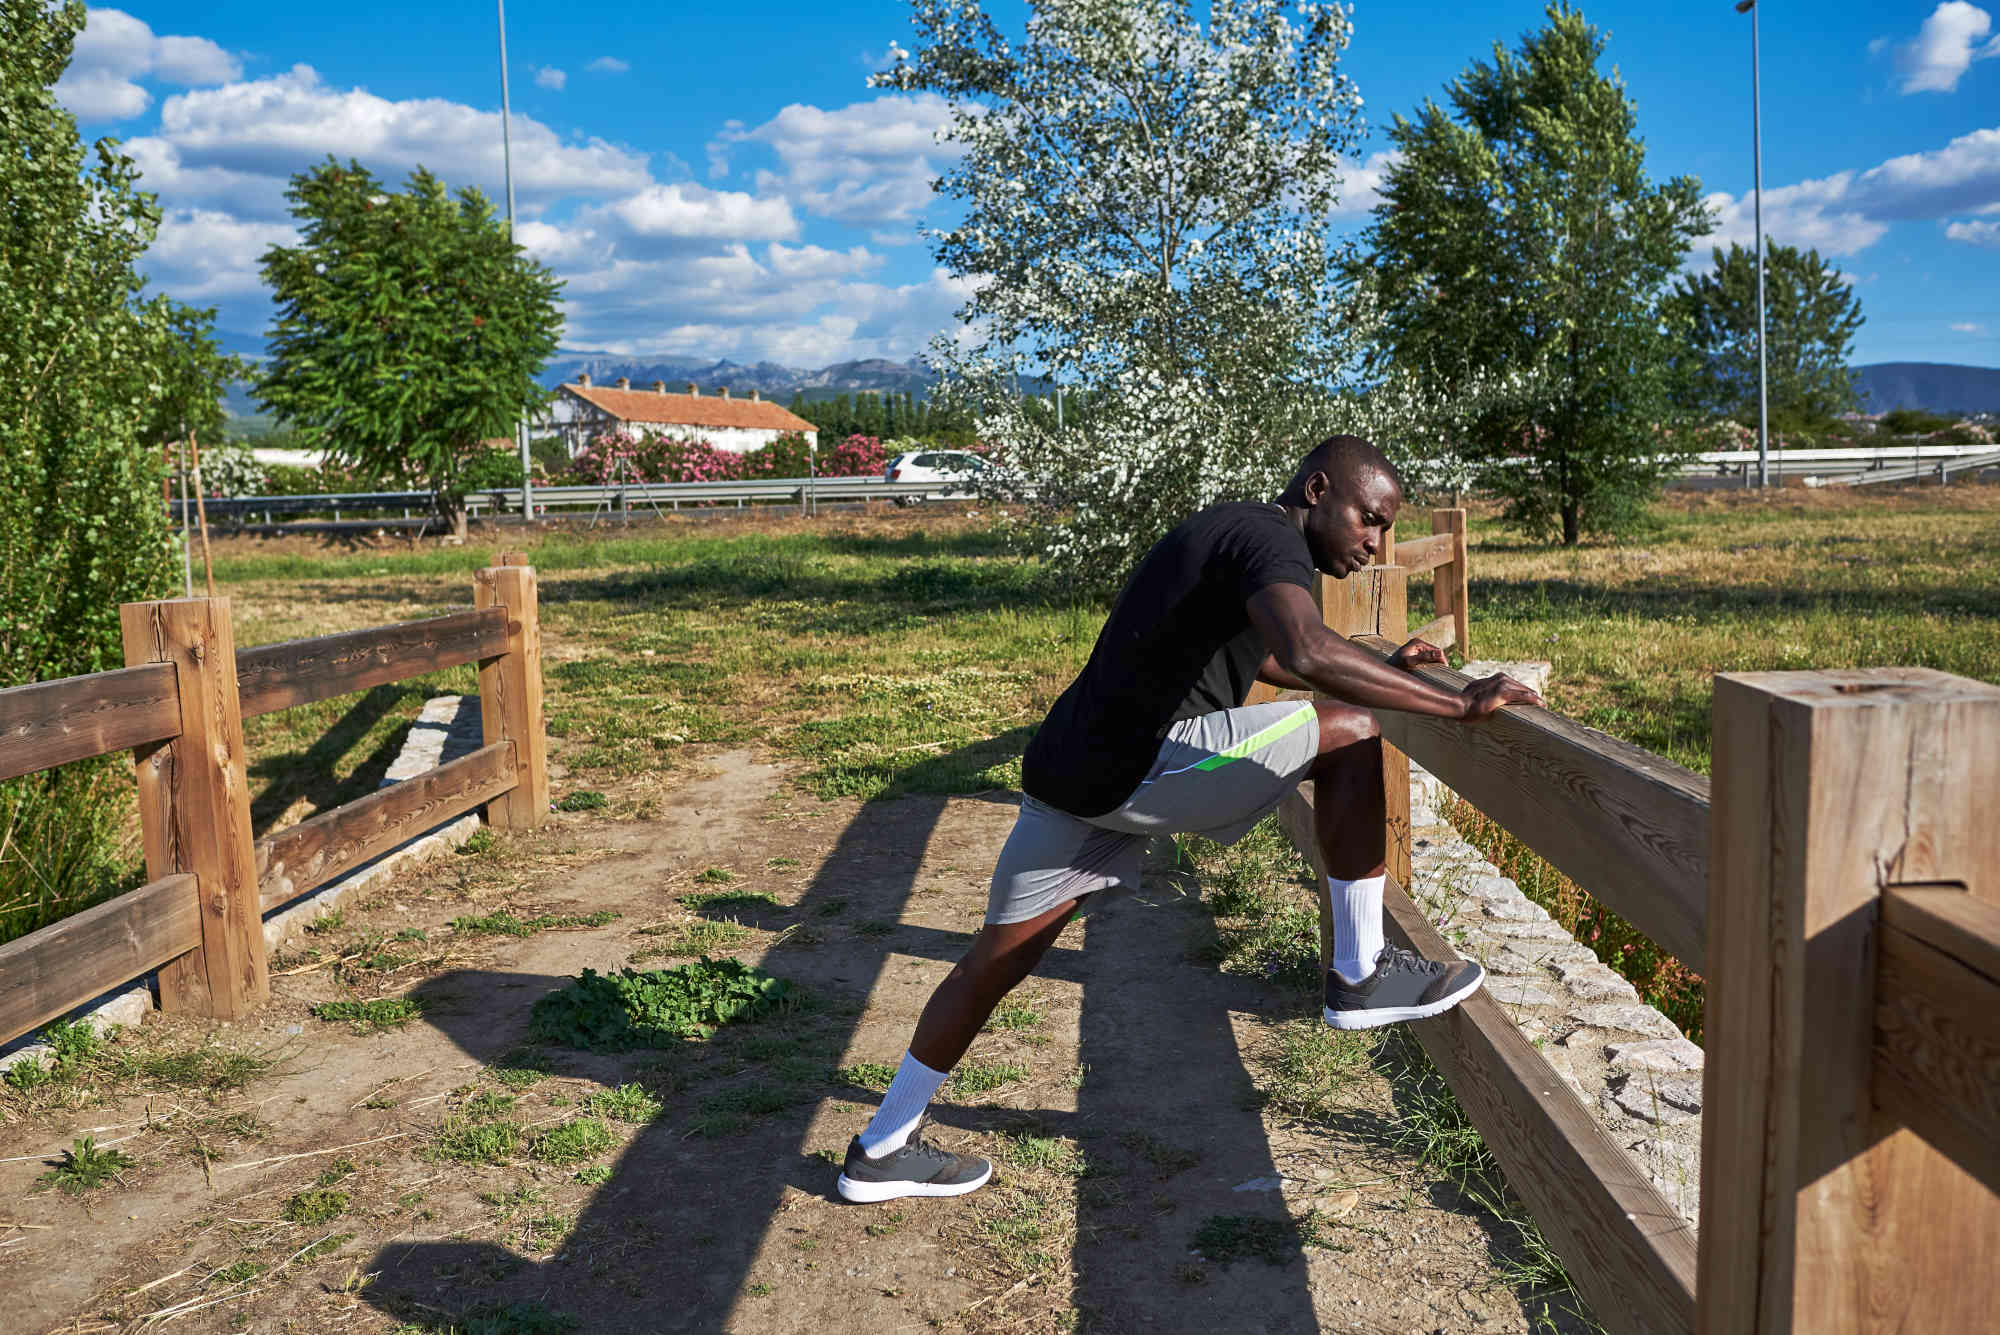 Sportsman stretching a sunny summer day. He is in an urban park.